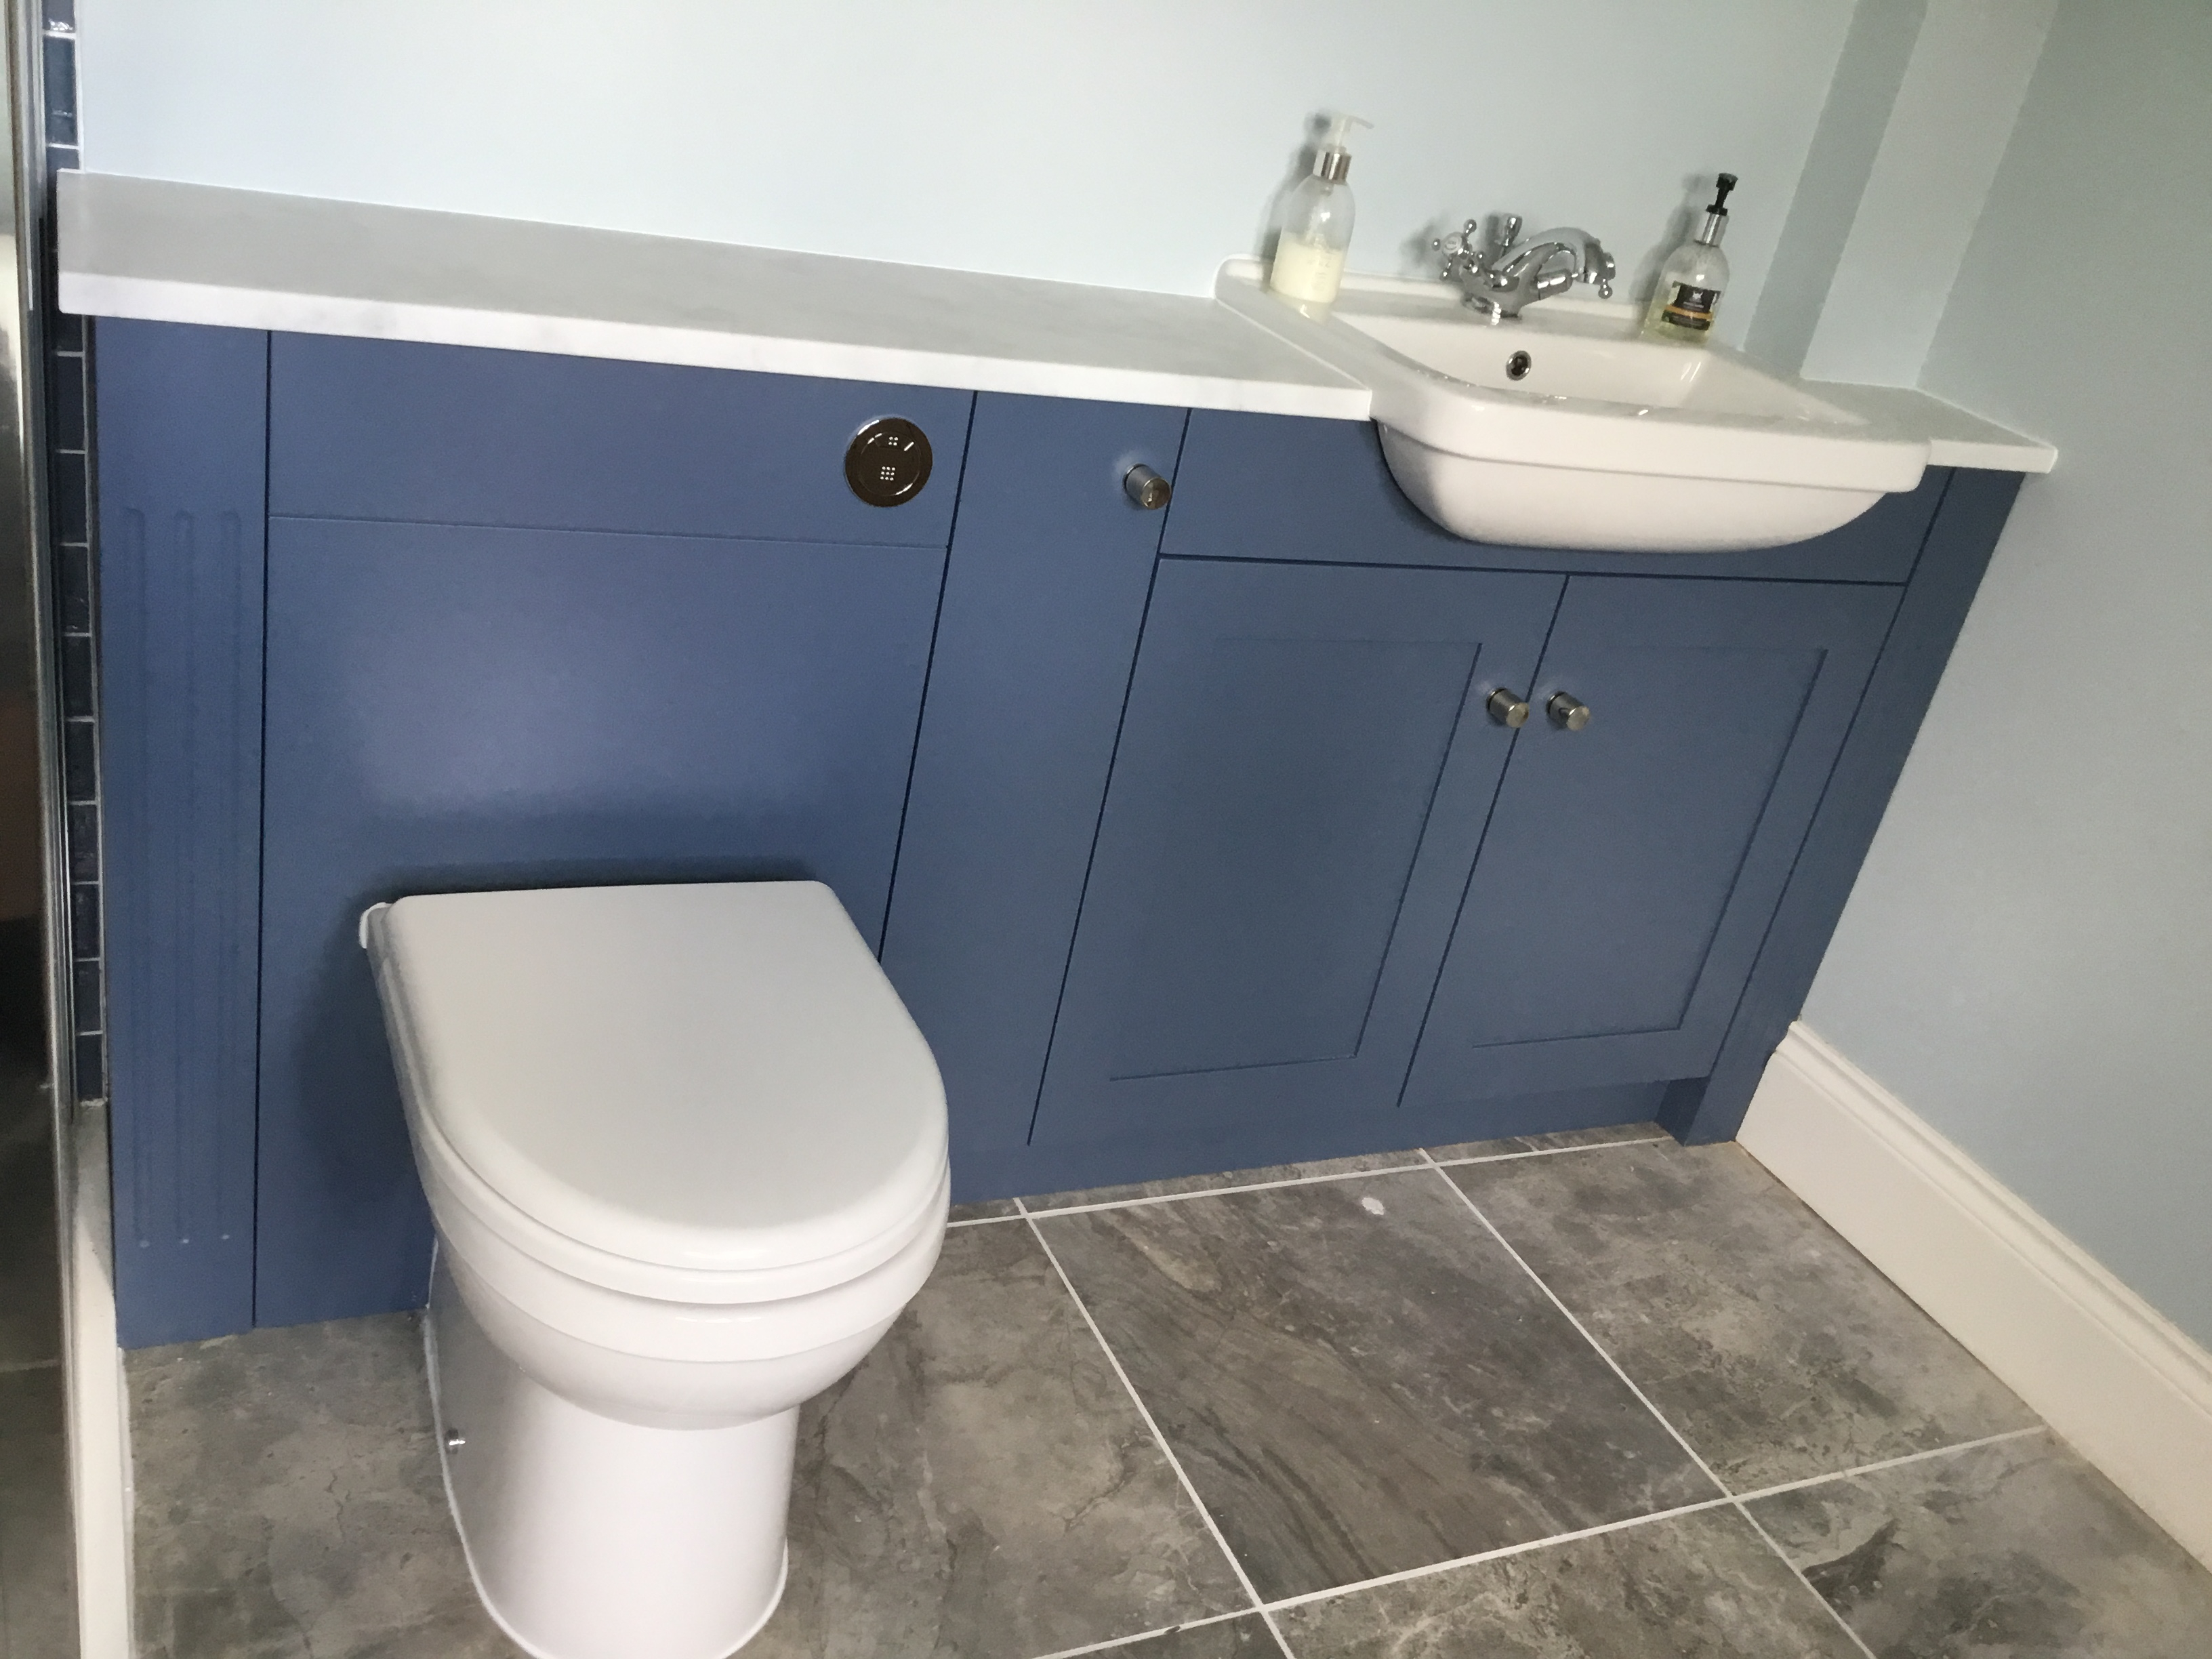 Bespoke Bathrooms Bathroom Furniture And Saunas intended for sizing 3264 X 2448